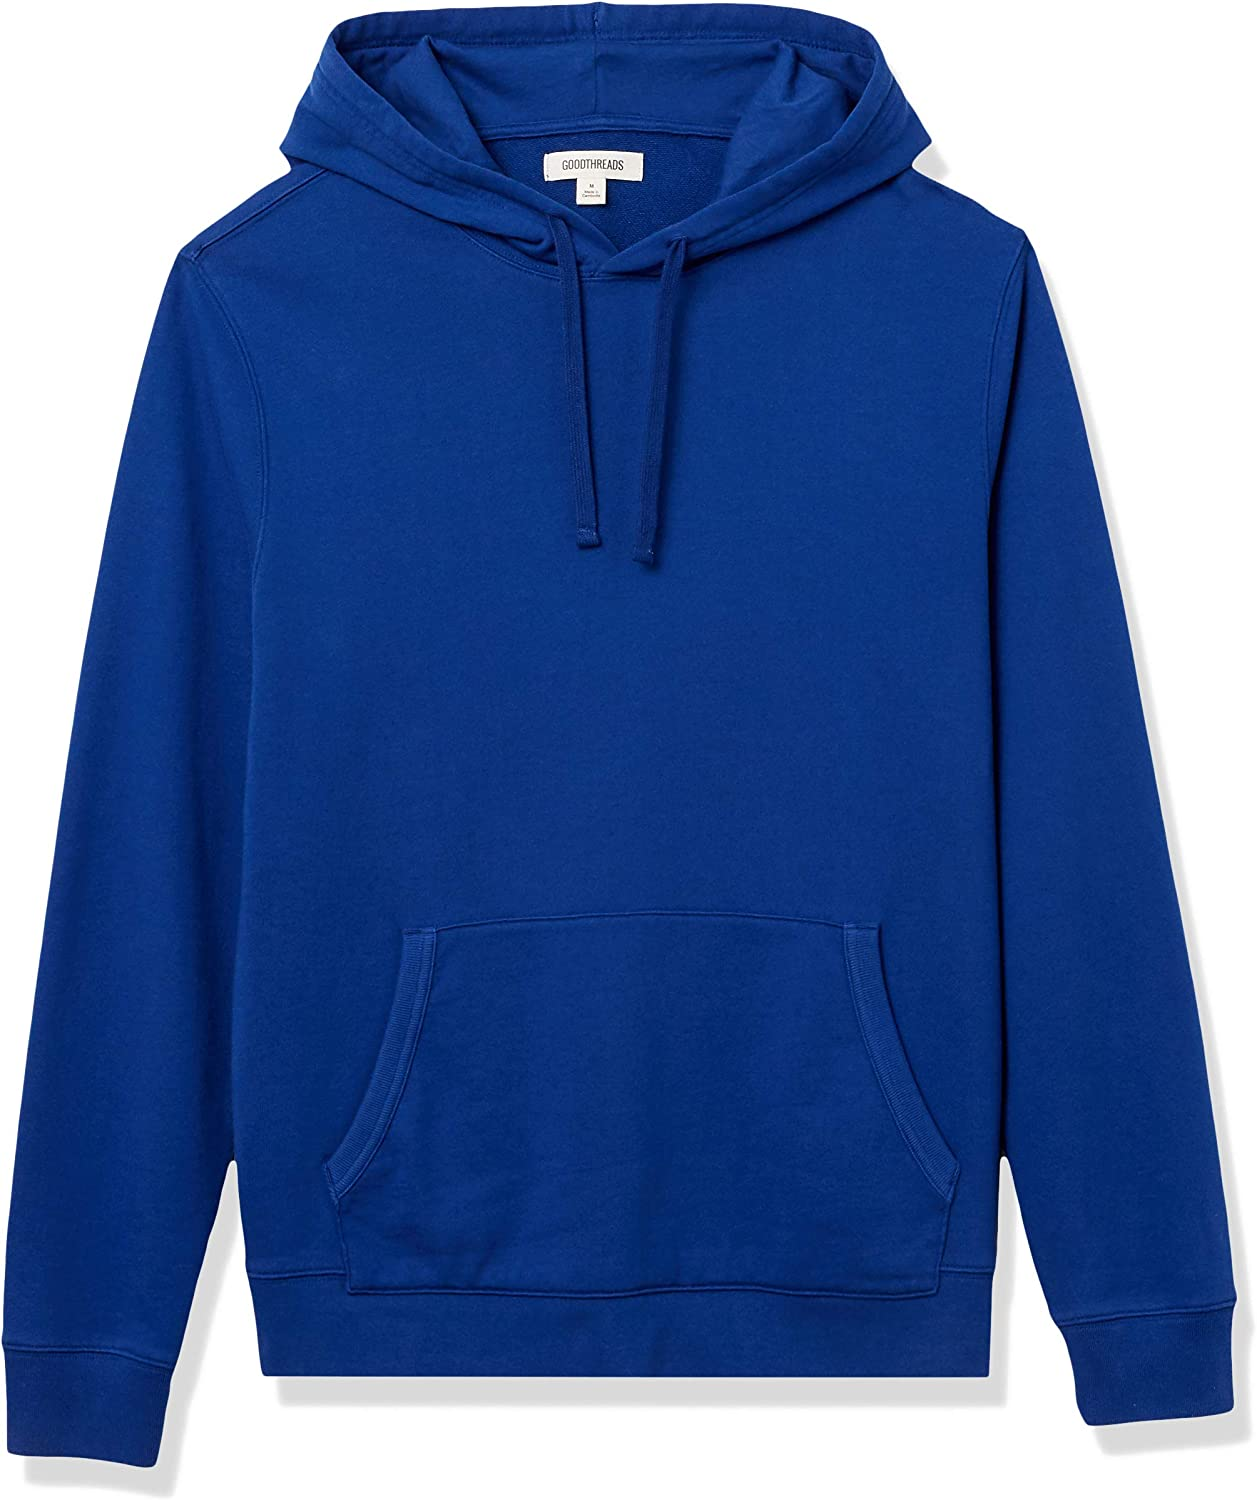 Brand Goodthreads Mens Lightweight French Terry Pullover Hoodie Sweatshirt